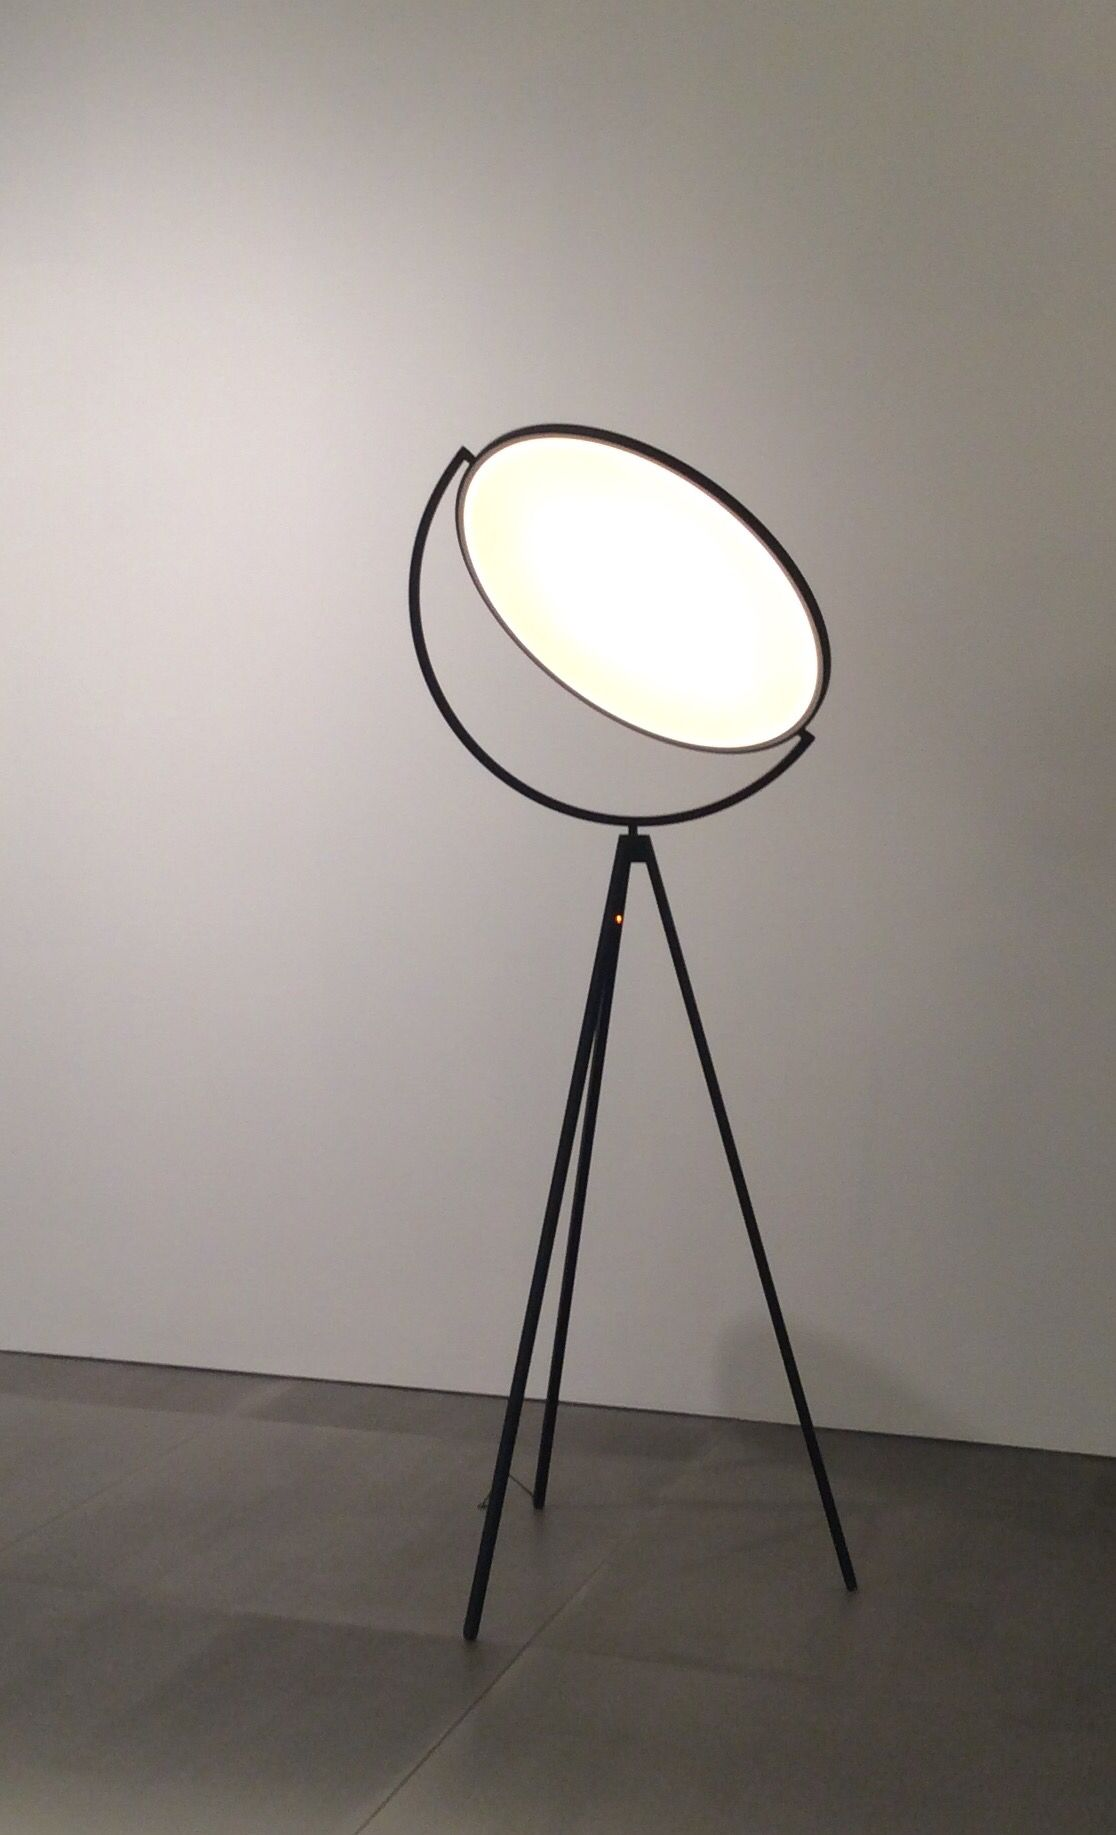 Pin By Lisa Ho Studio On Lighting Pinterest Beleuchtung Lampen And Lampen Wohnzimmer